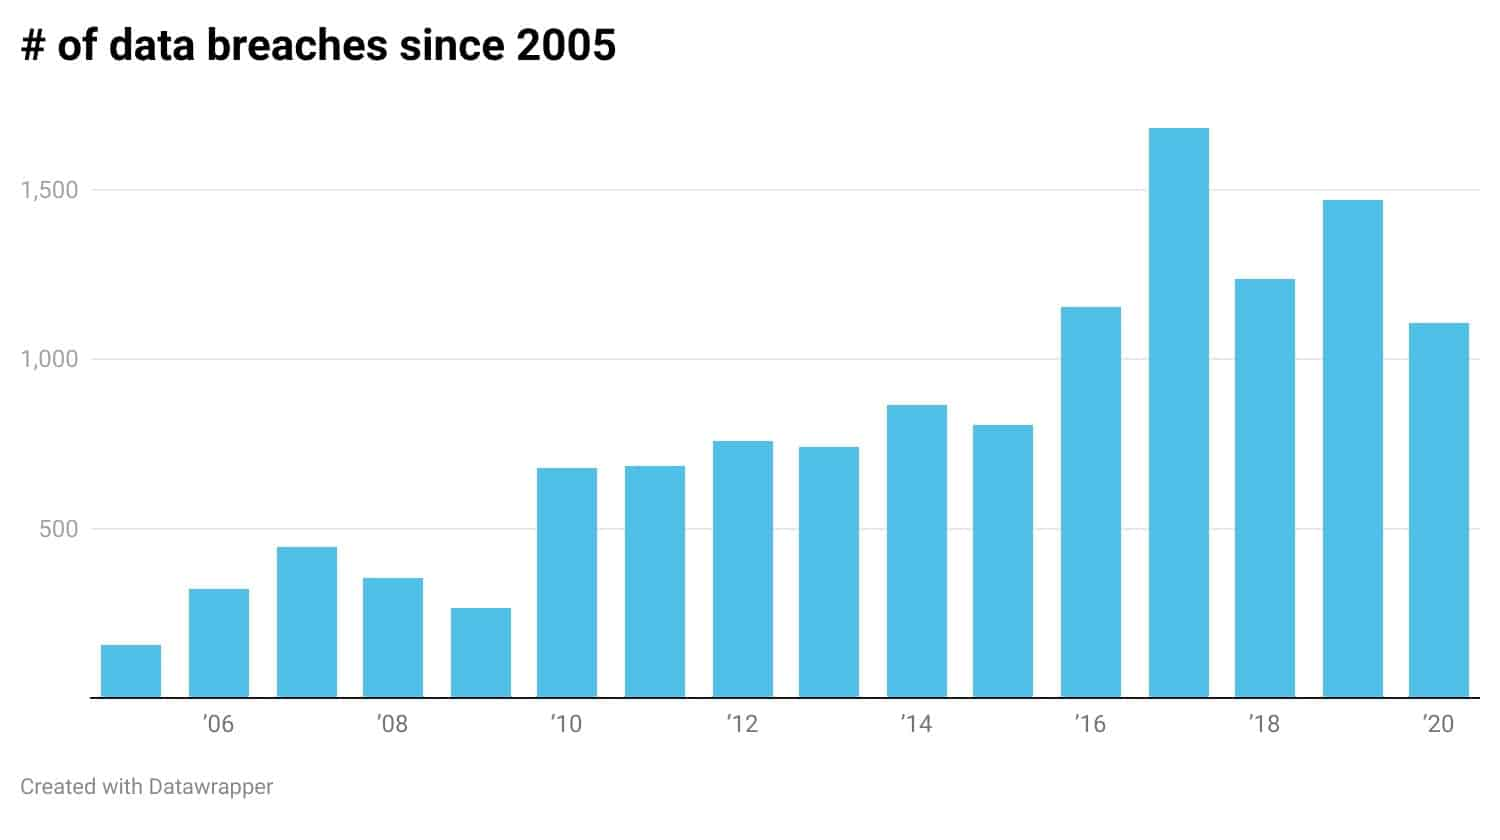 # of data breaches since 2005